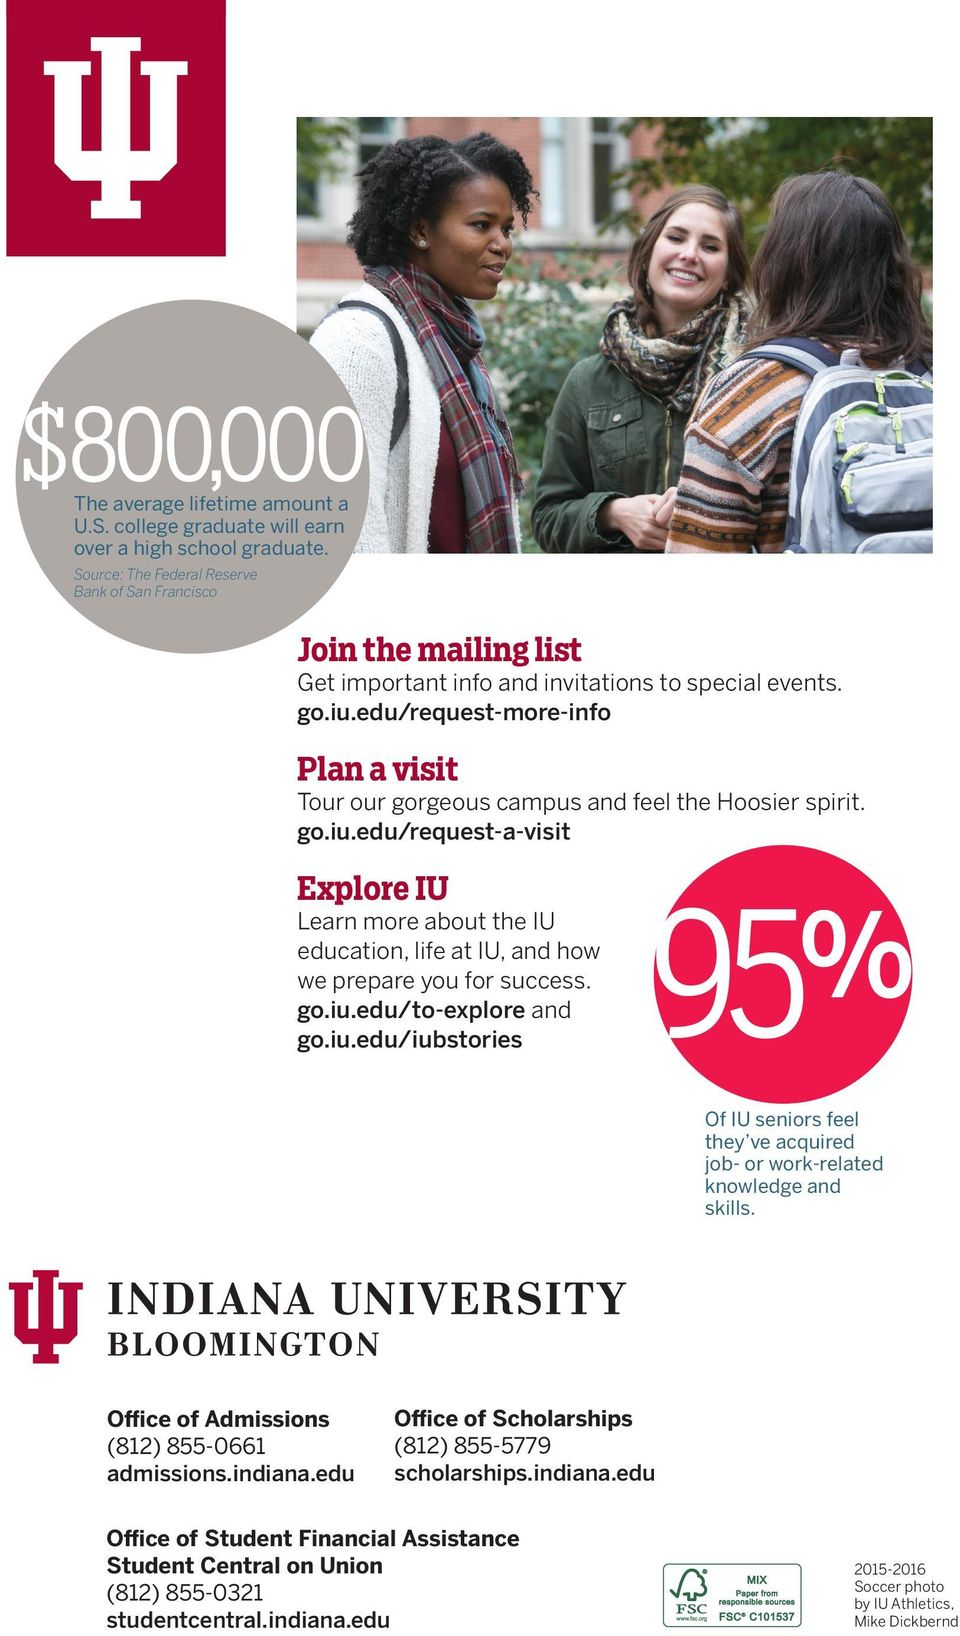 edu/request-more-info Plan a visit Tour our gorgeous campus and feel the Hoosier spirit. go.iu.